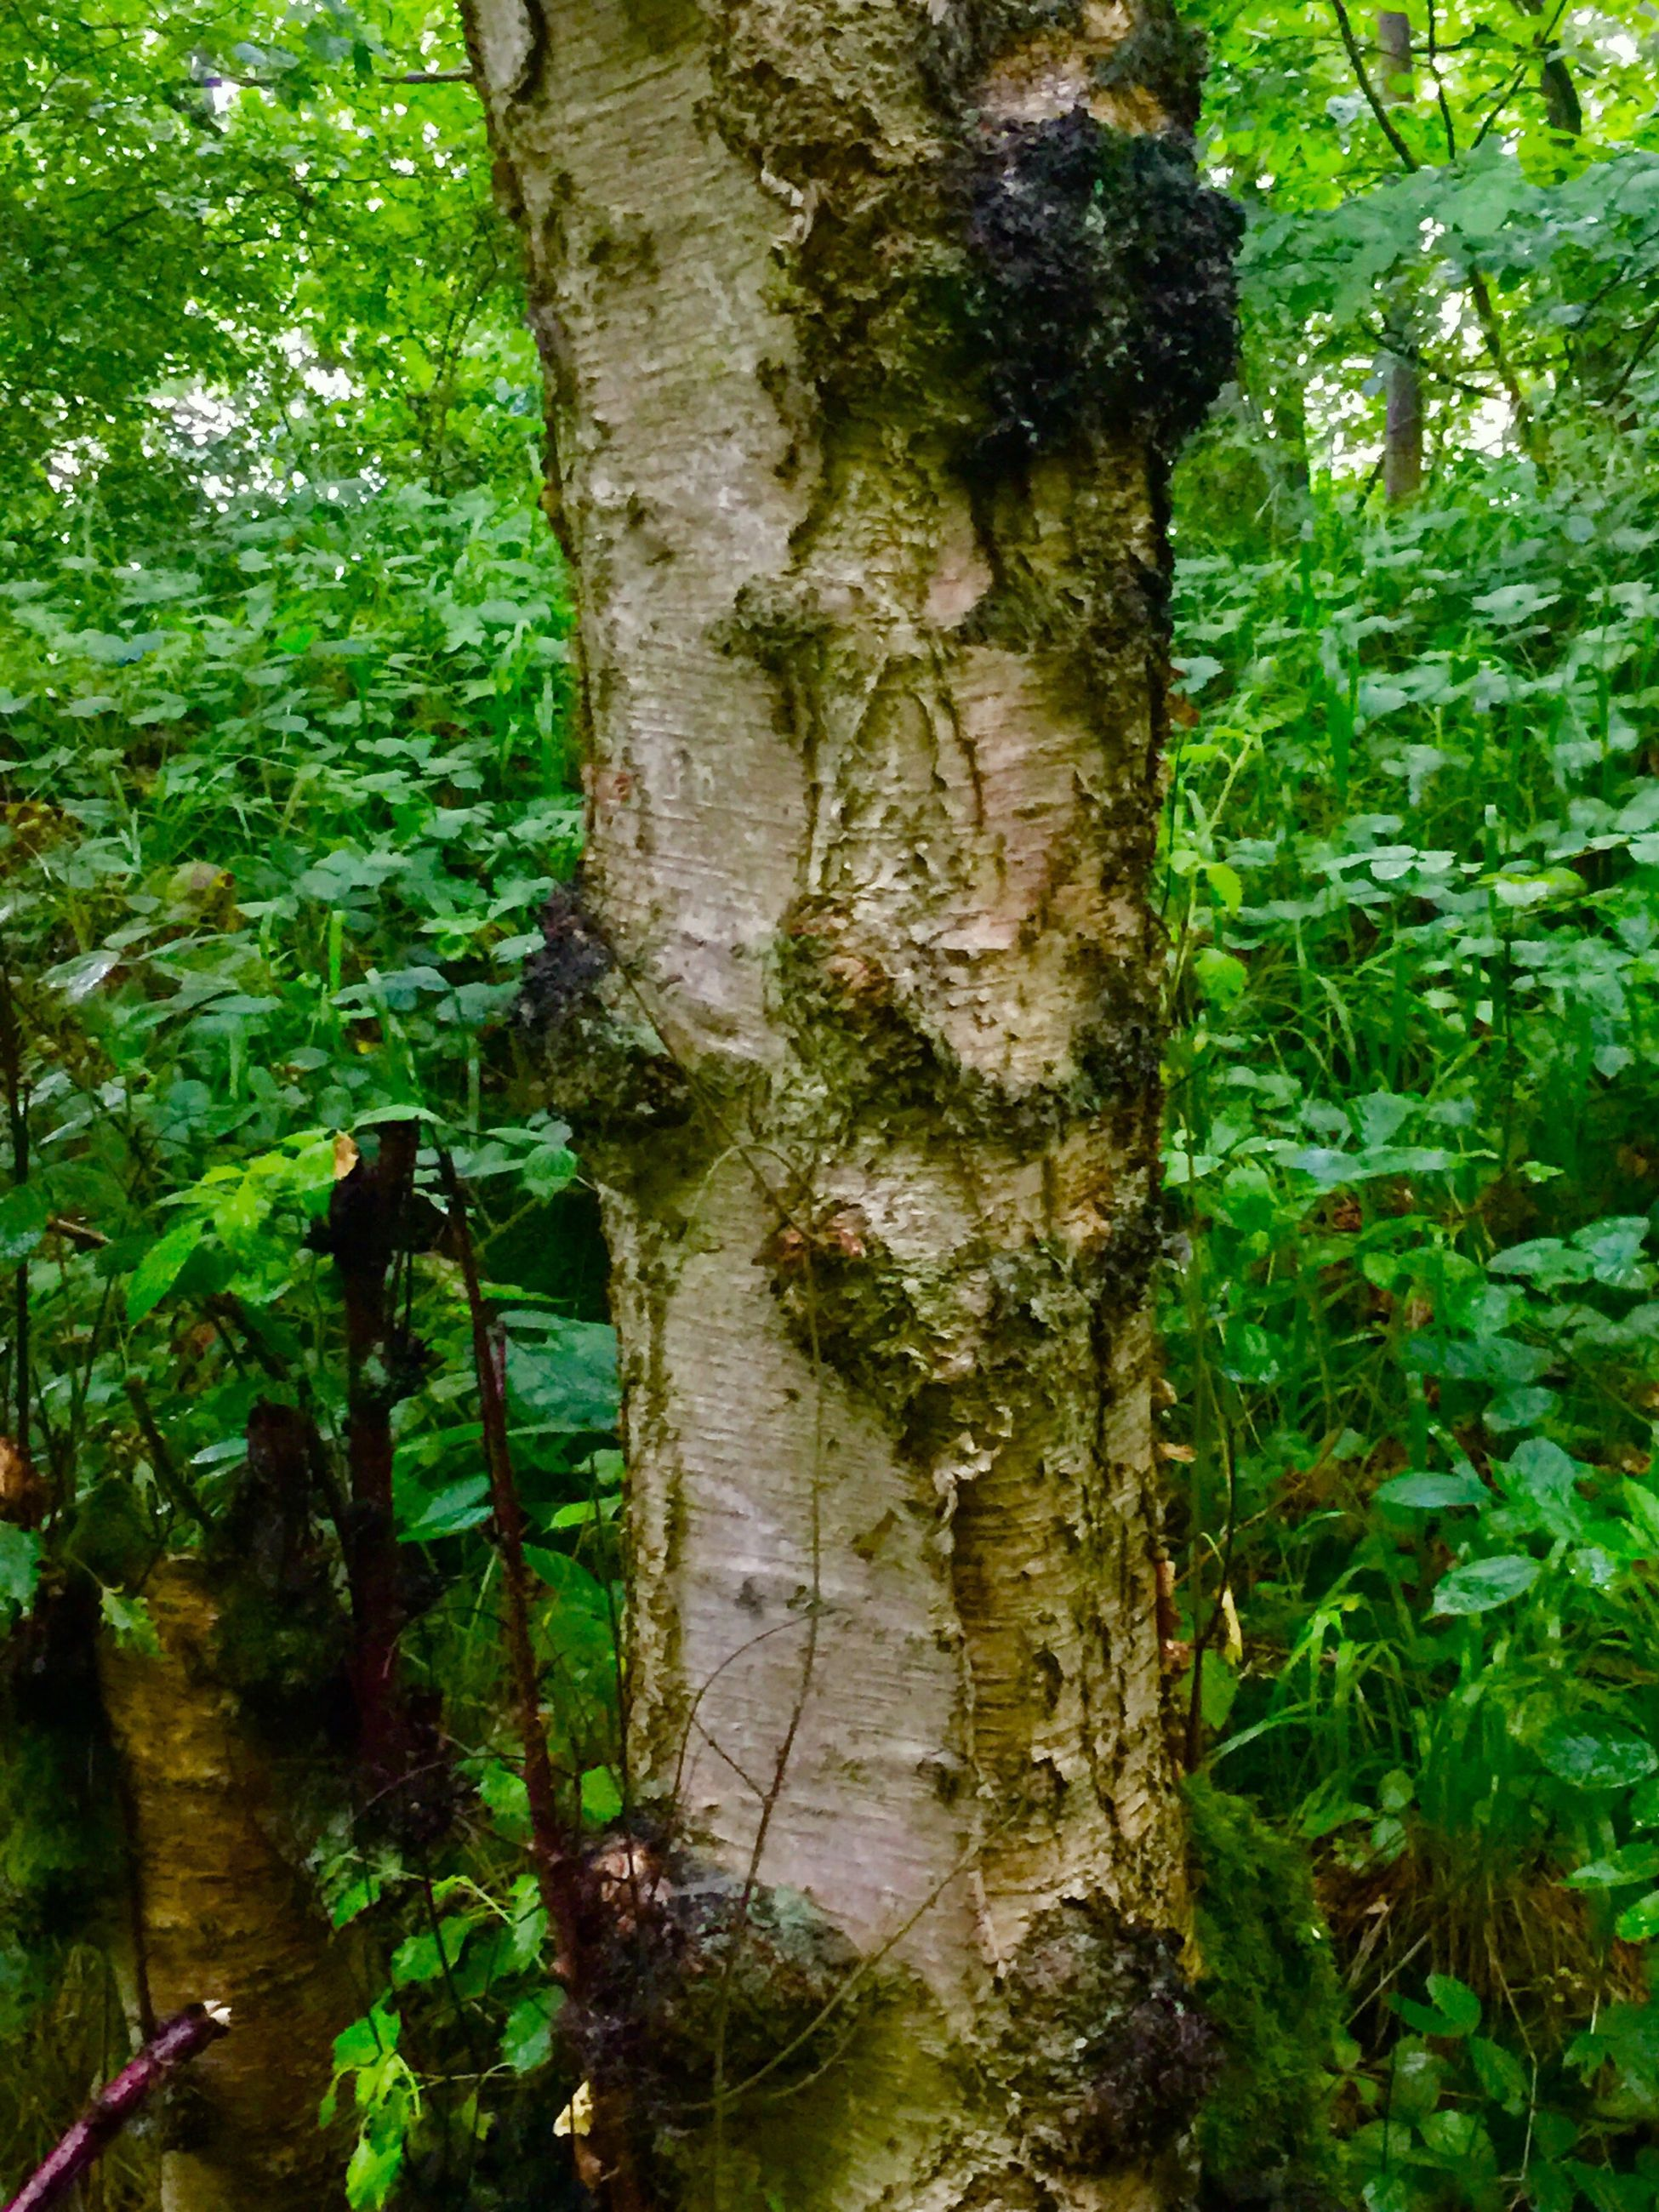 tree trunk, tree, growth, nature, green color, day, plant, forest, no people, outdoors, beauty in nature, close-up